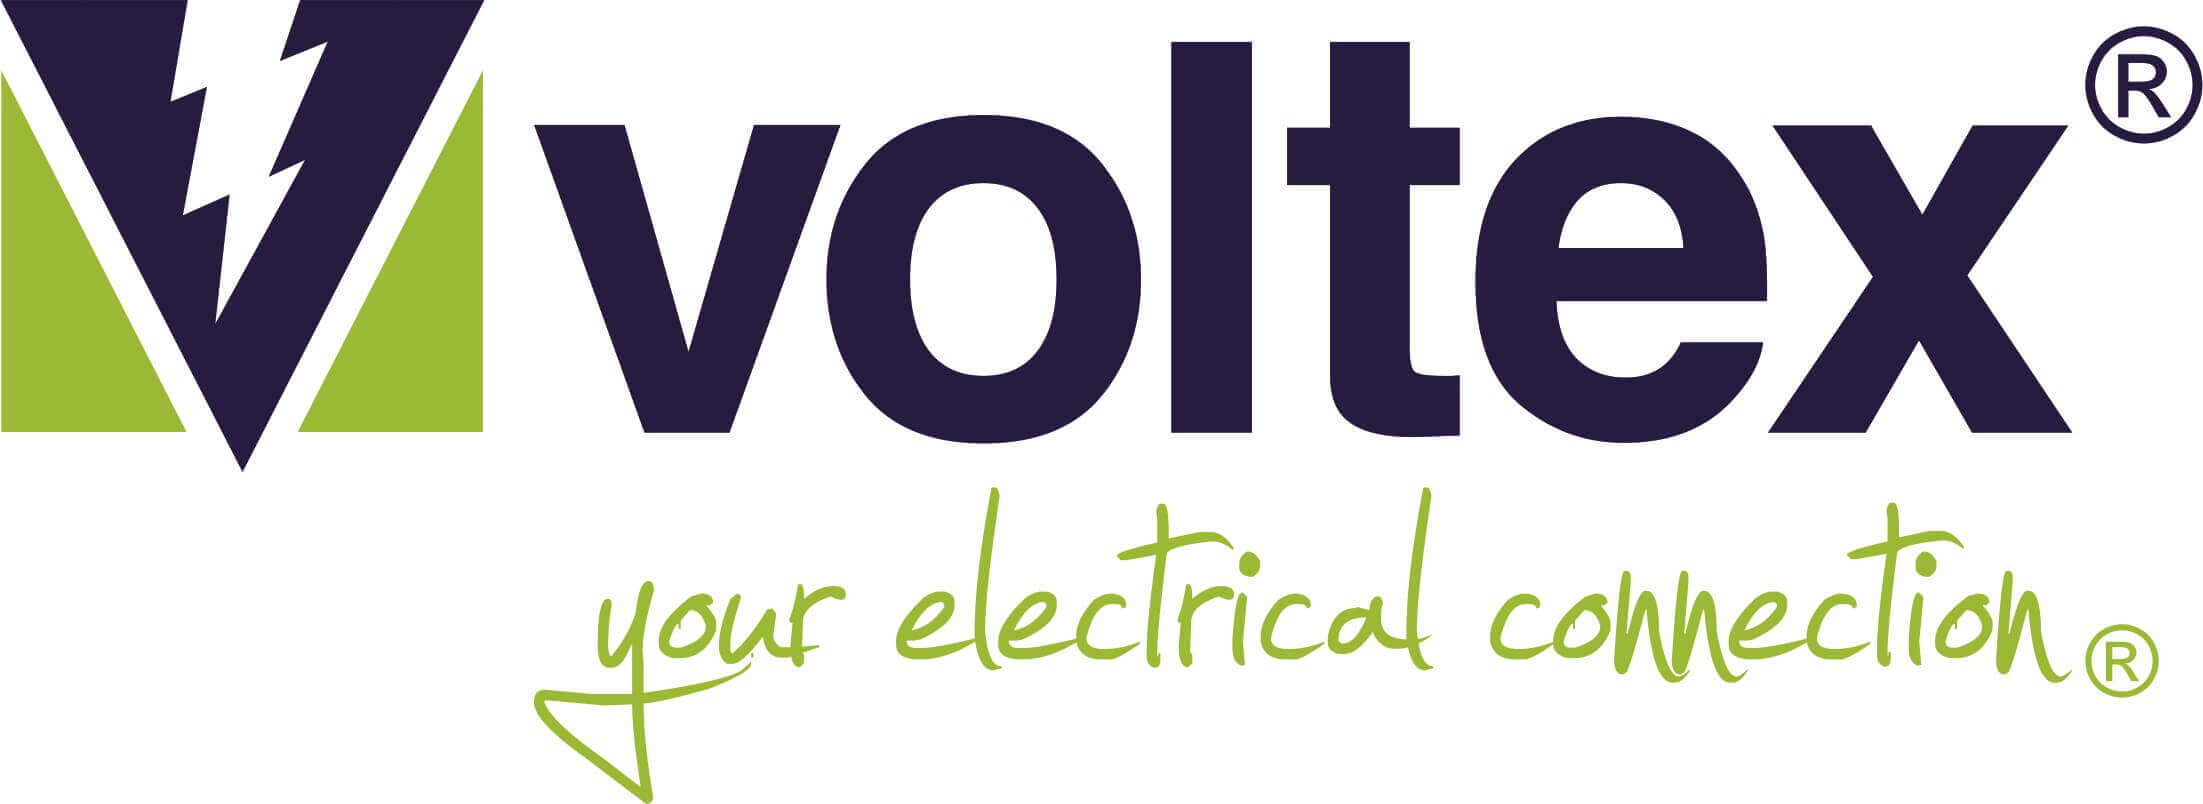 Home Voltex Electrical Wiring Licence South Africa About Us